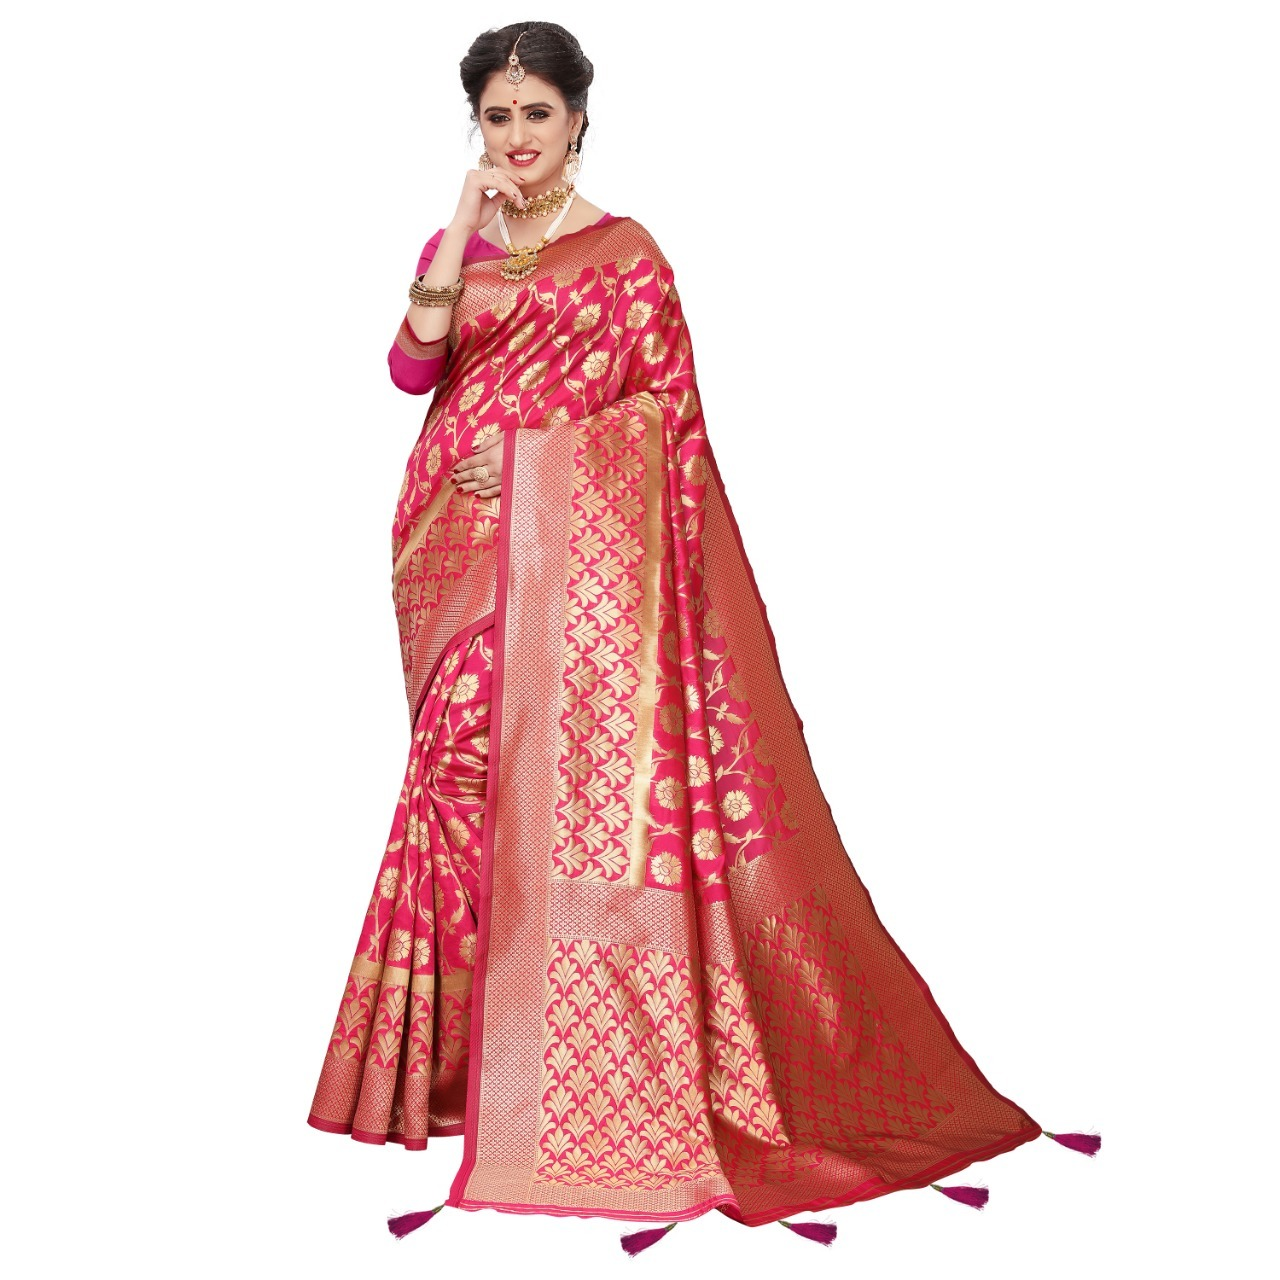 Jacquard Work Banarasi Silk Saree With Latkan